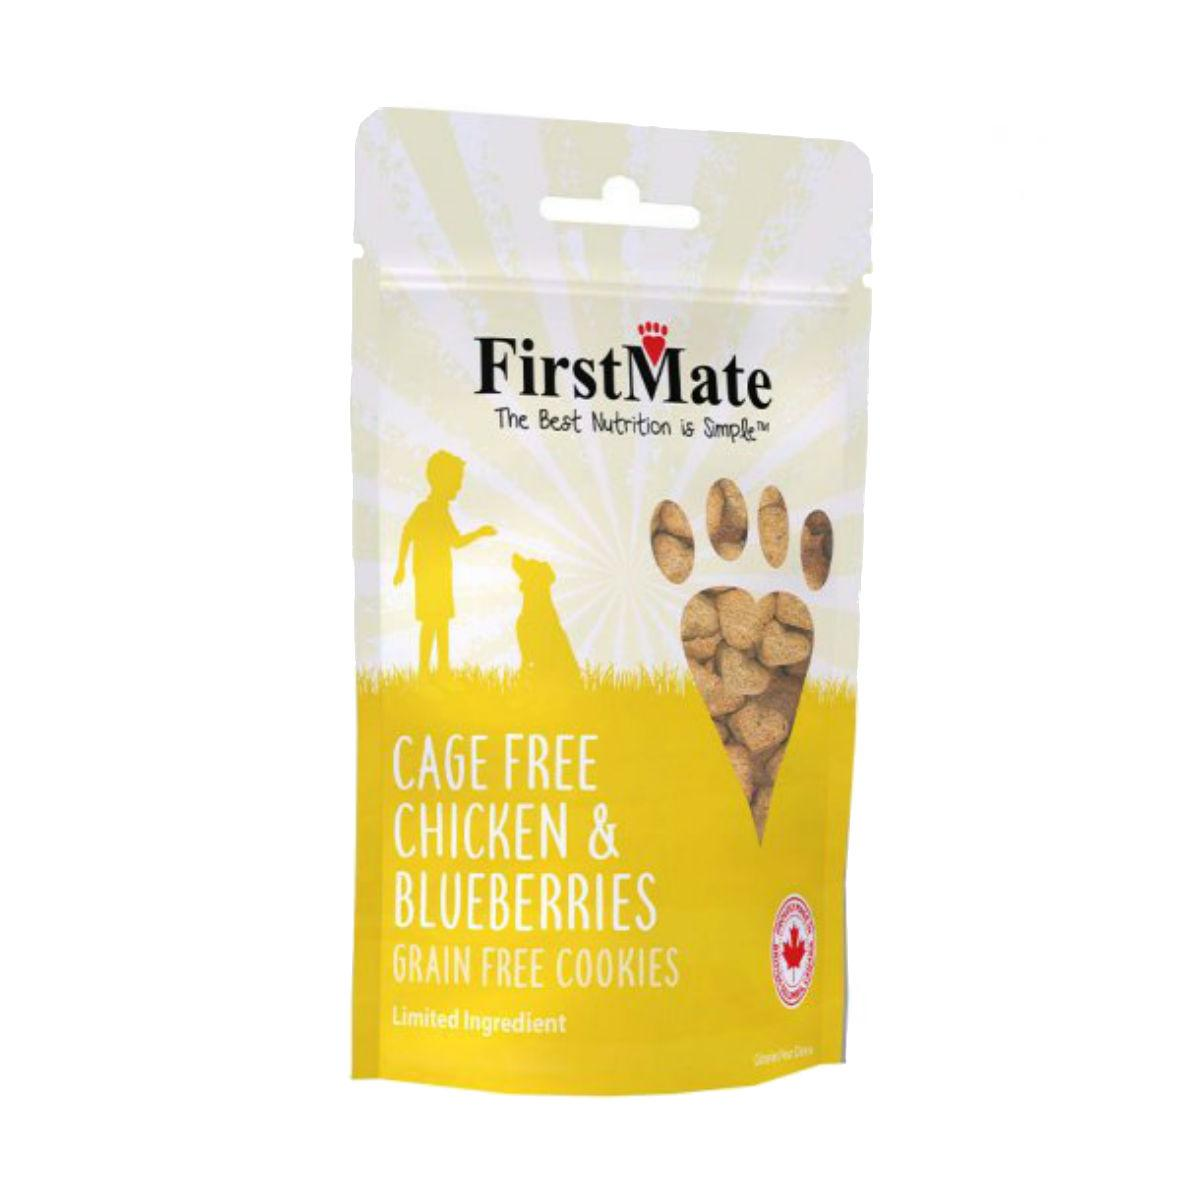 FirstMate Grain Free Cookie Dog Treats - Cage Free Chicken & Blueberries